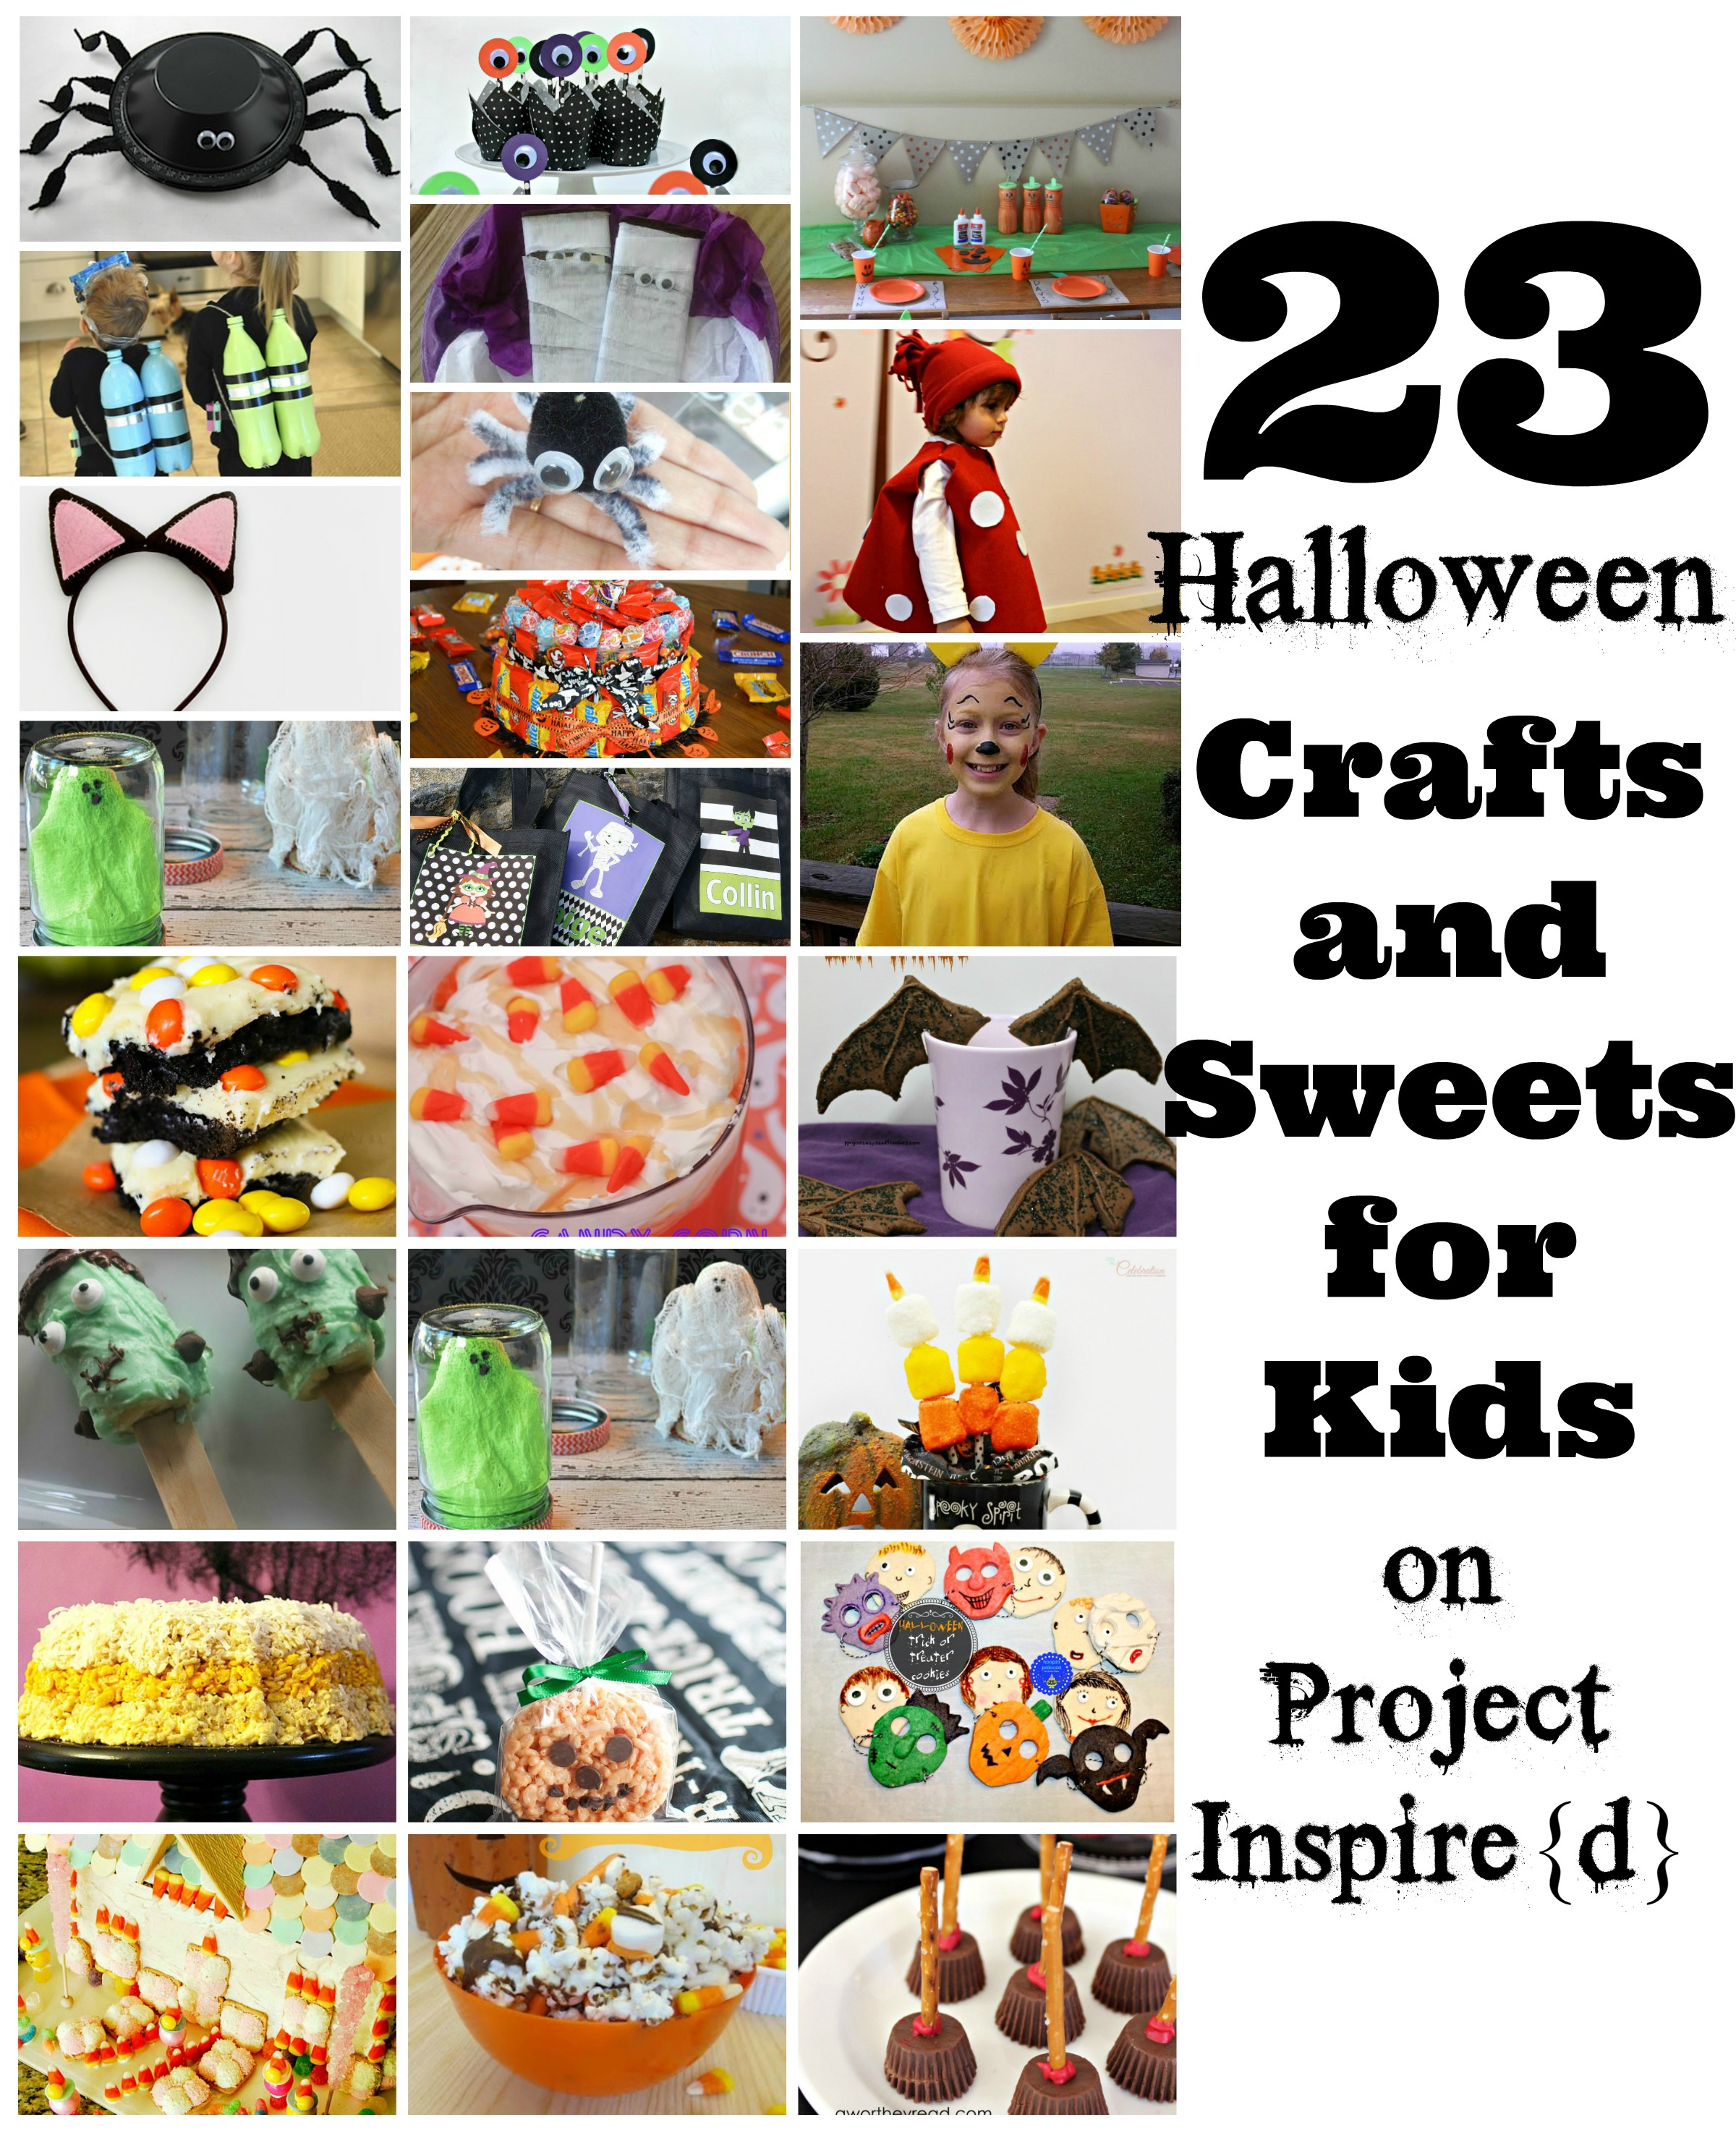 PI Features: Halloween Ideas for Kids